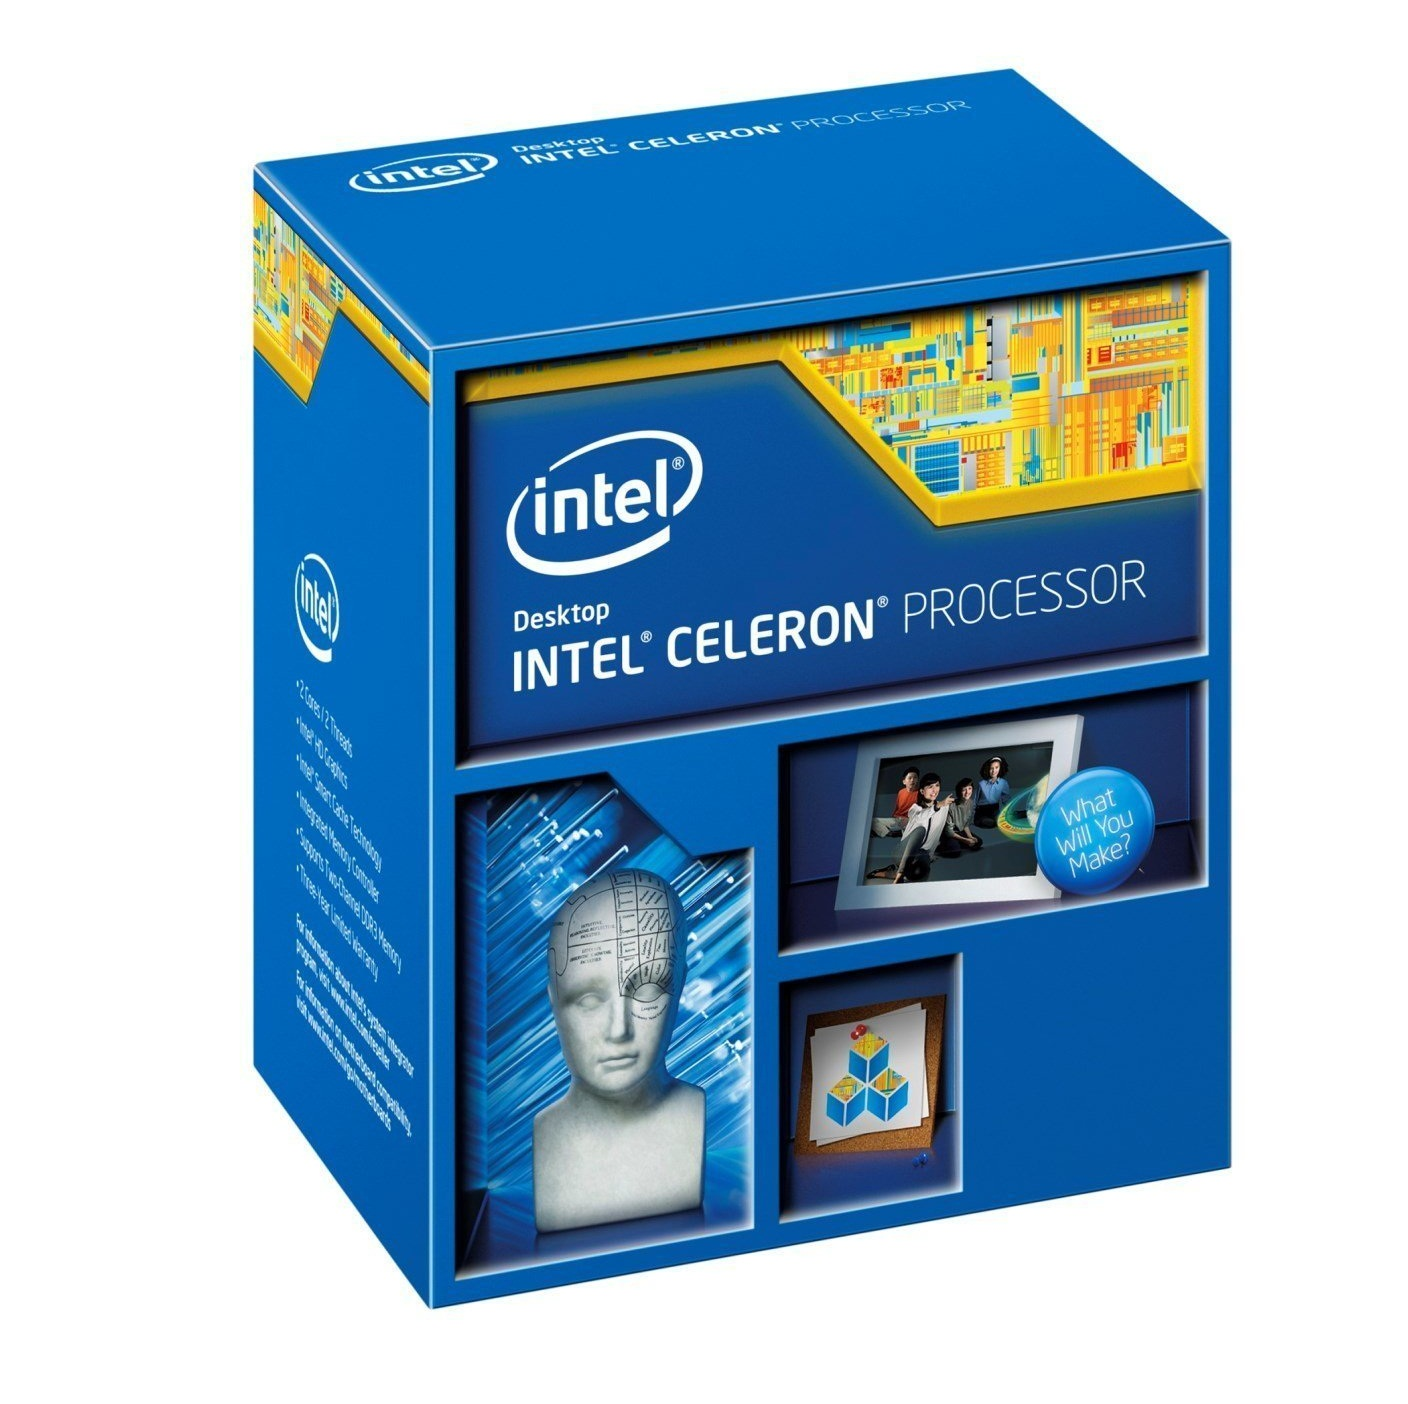 CPU máy bàn Intel Celeron G1840 (2.8Ghz/ 2Mb cache) Full Box